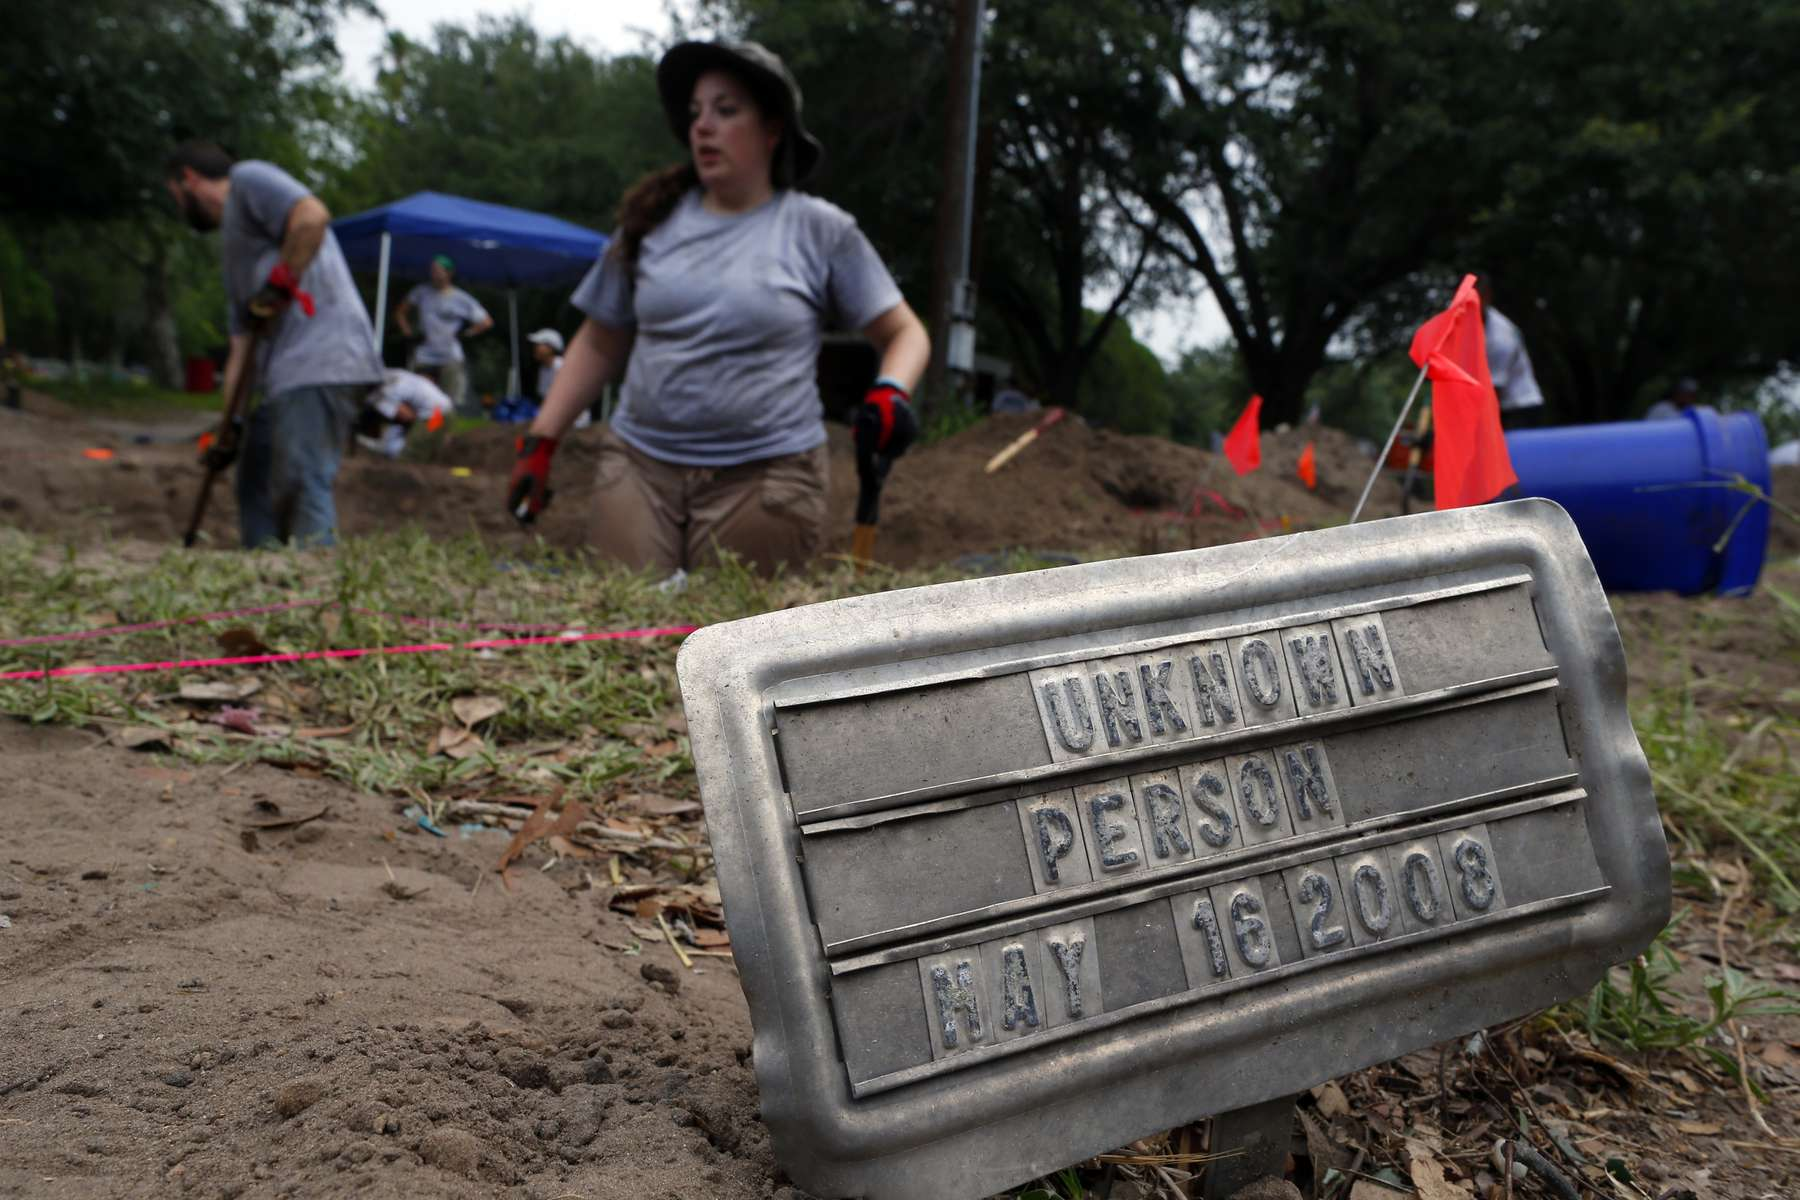 Falfurrias, Texas - University of Indianapolis Graduate Student Erica Christensen, 24, (C) works to exhume a body of an unidentified migrant who apparently died crossing the border and ended up buried anonymously in a pauper's grave in Falfurrias, Texas June 10, 2014.